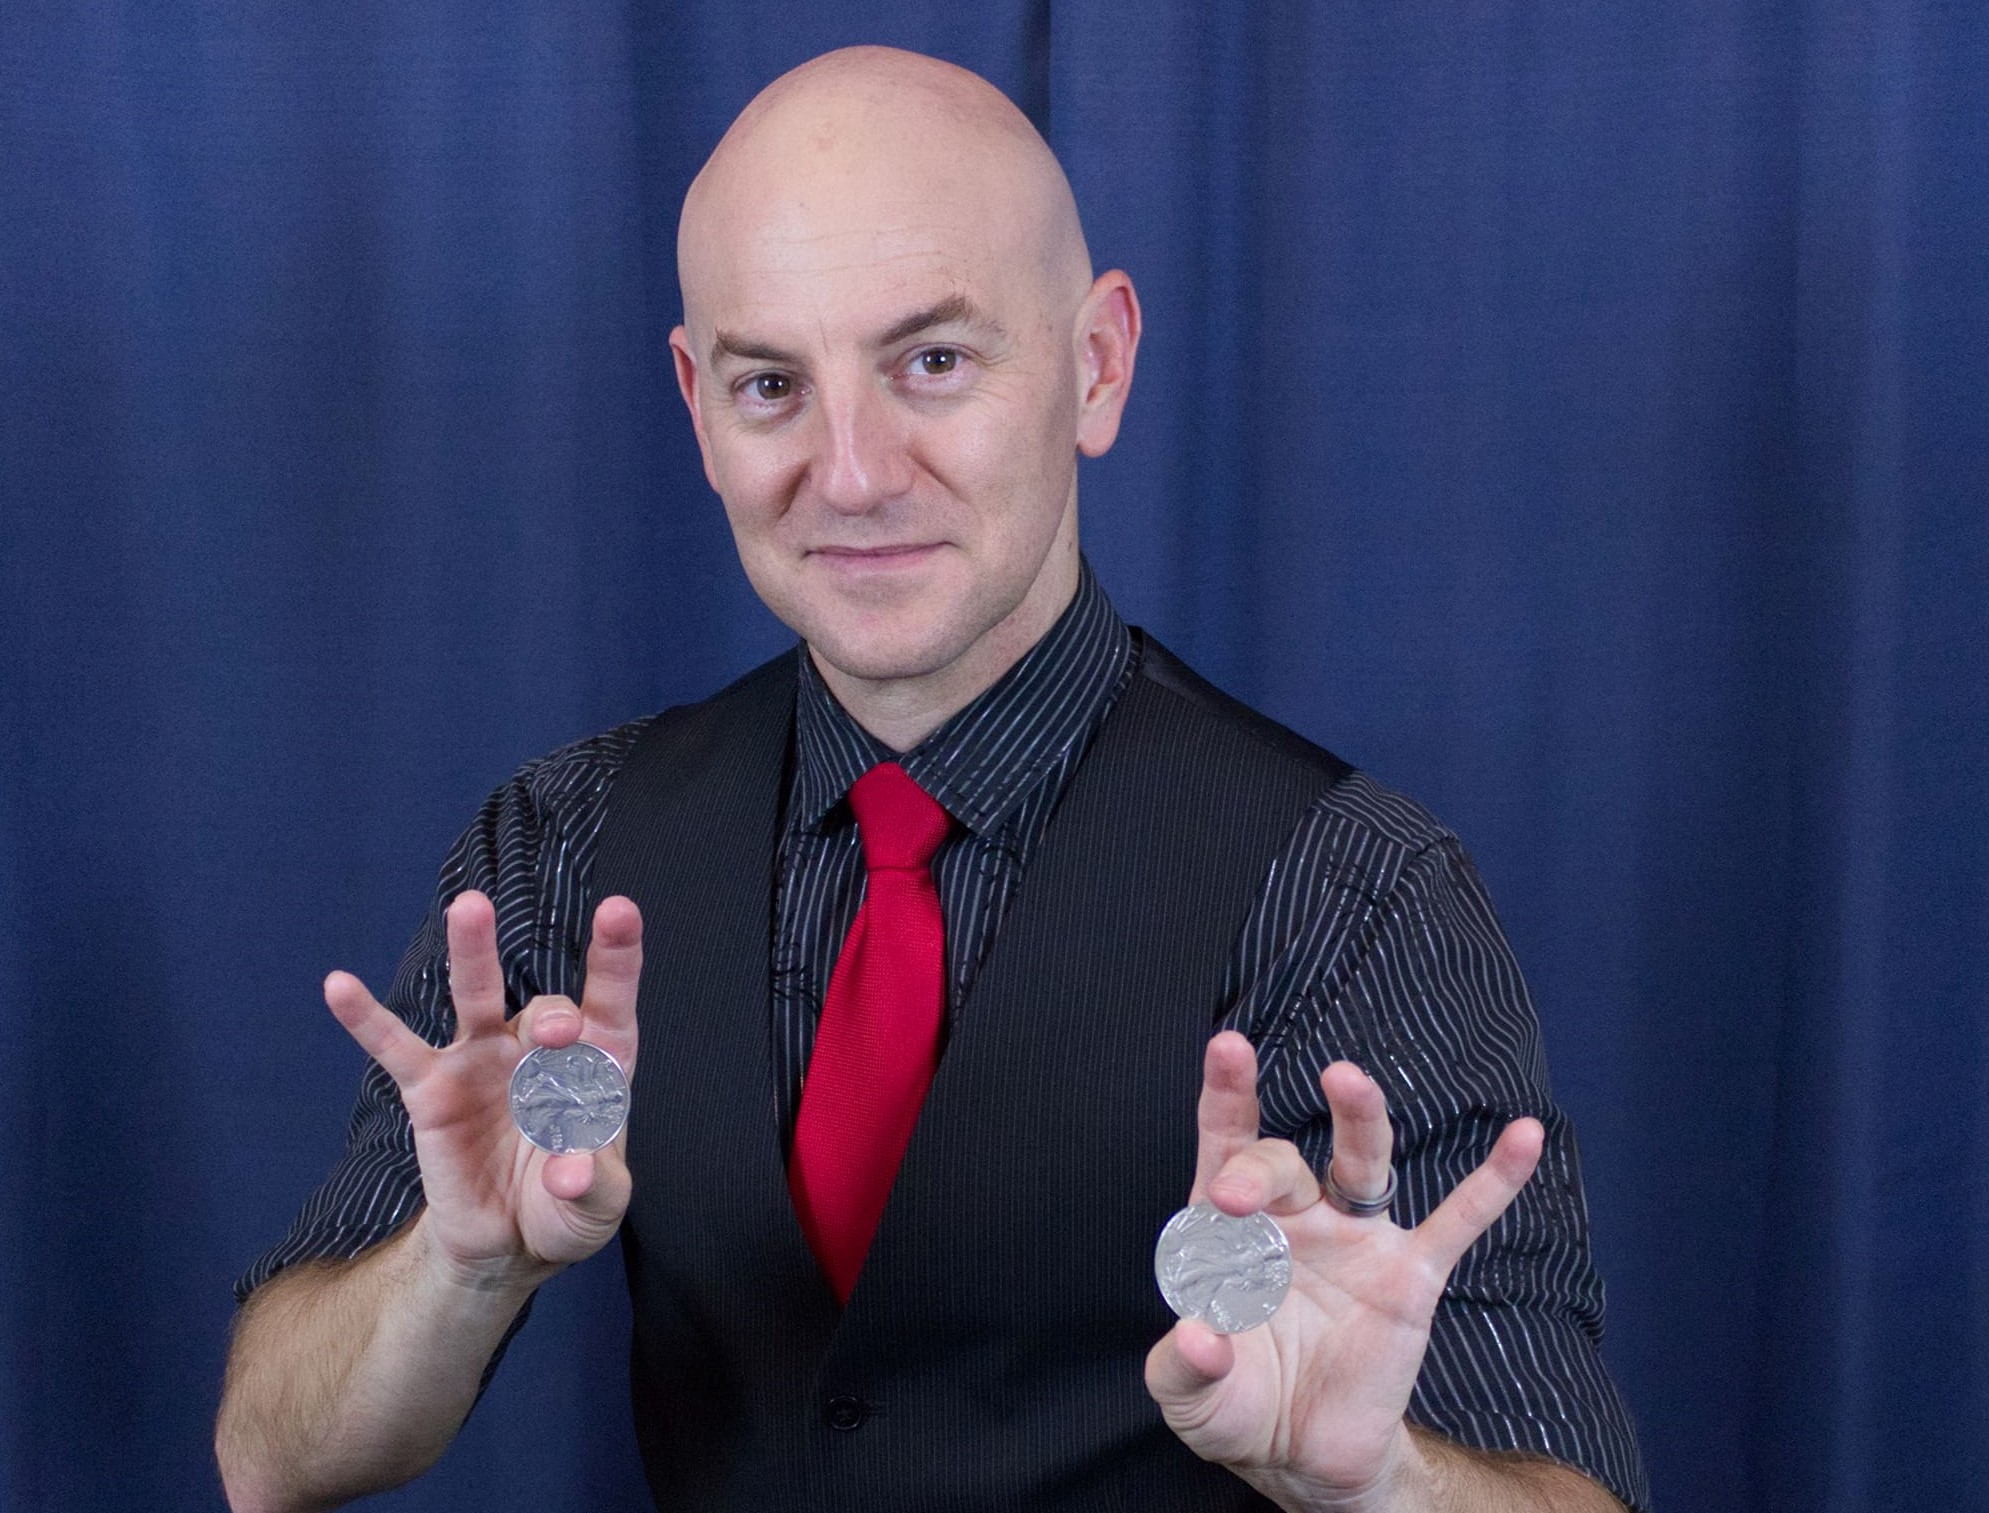 Red Spade Theater San Diego audience member amazed at magic show